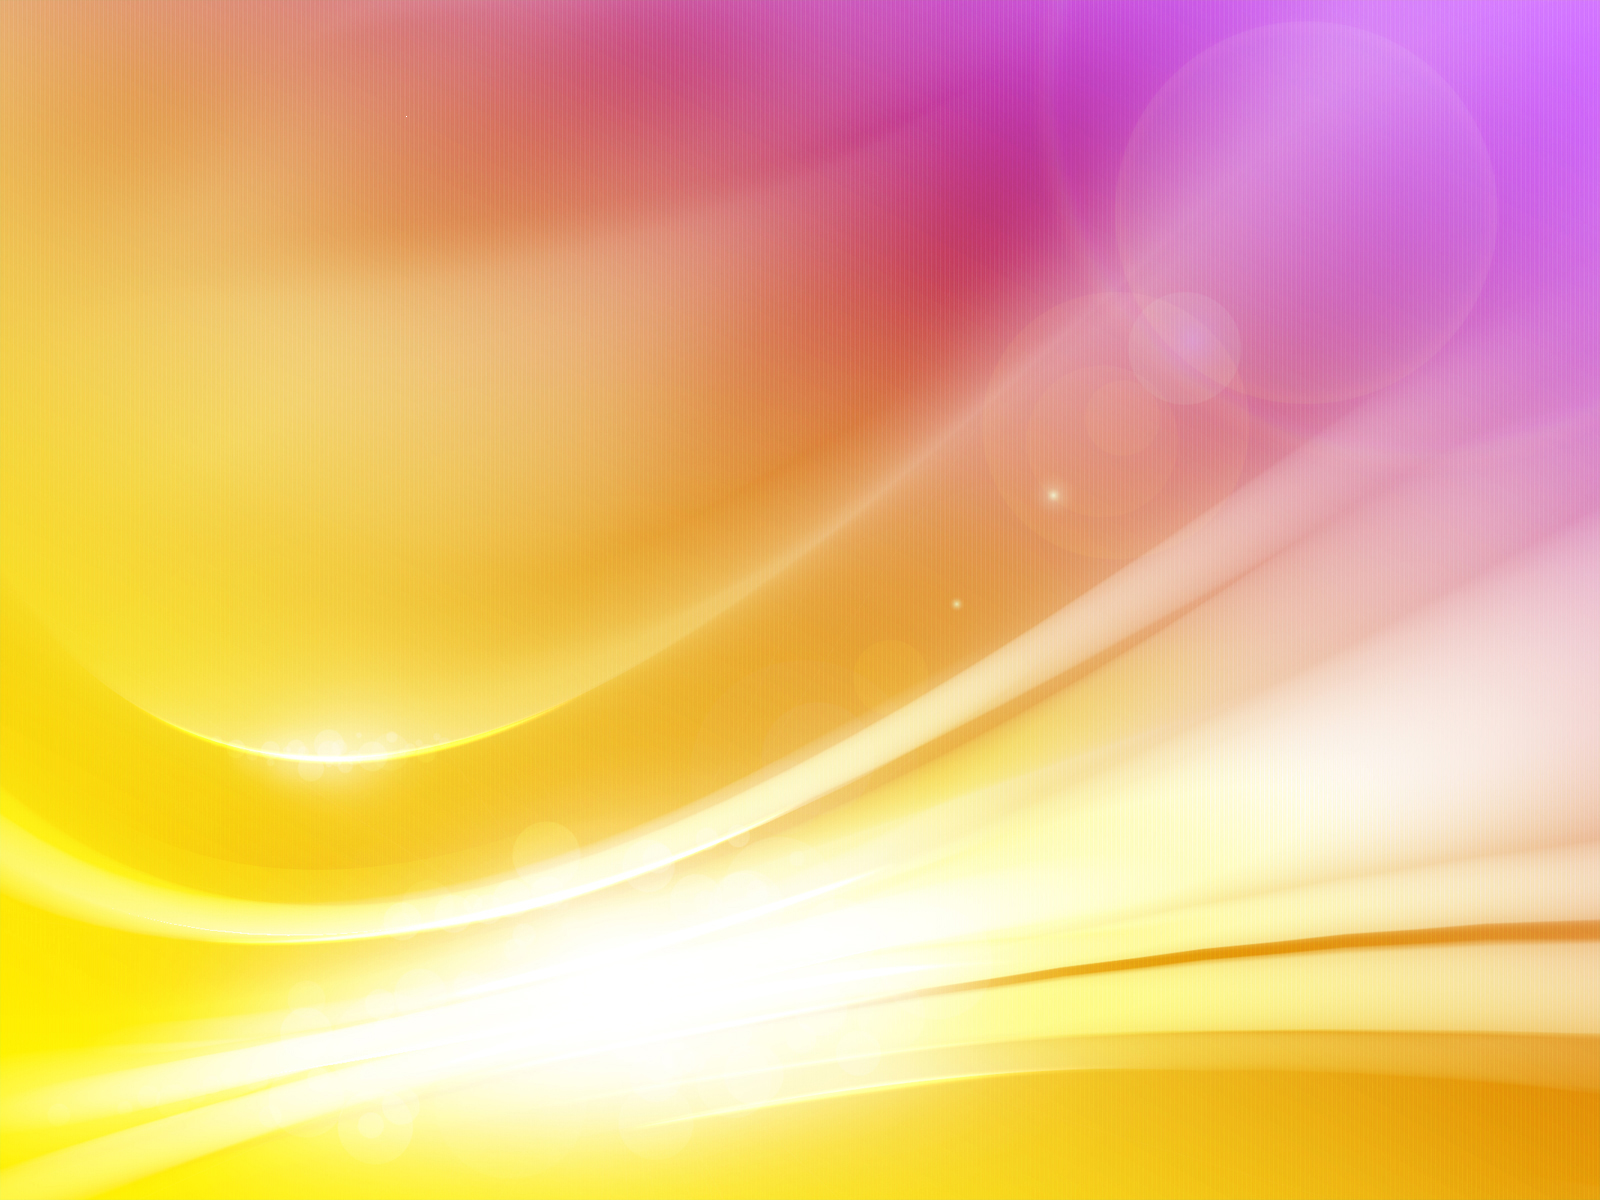 yellow on pink Wallpaper and Background Image   1600x1200 ...